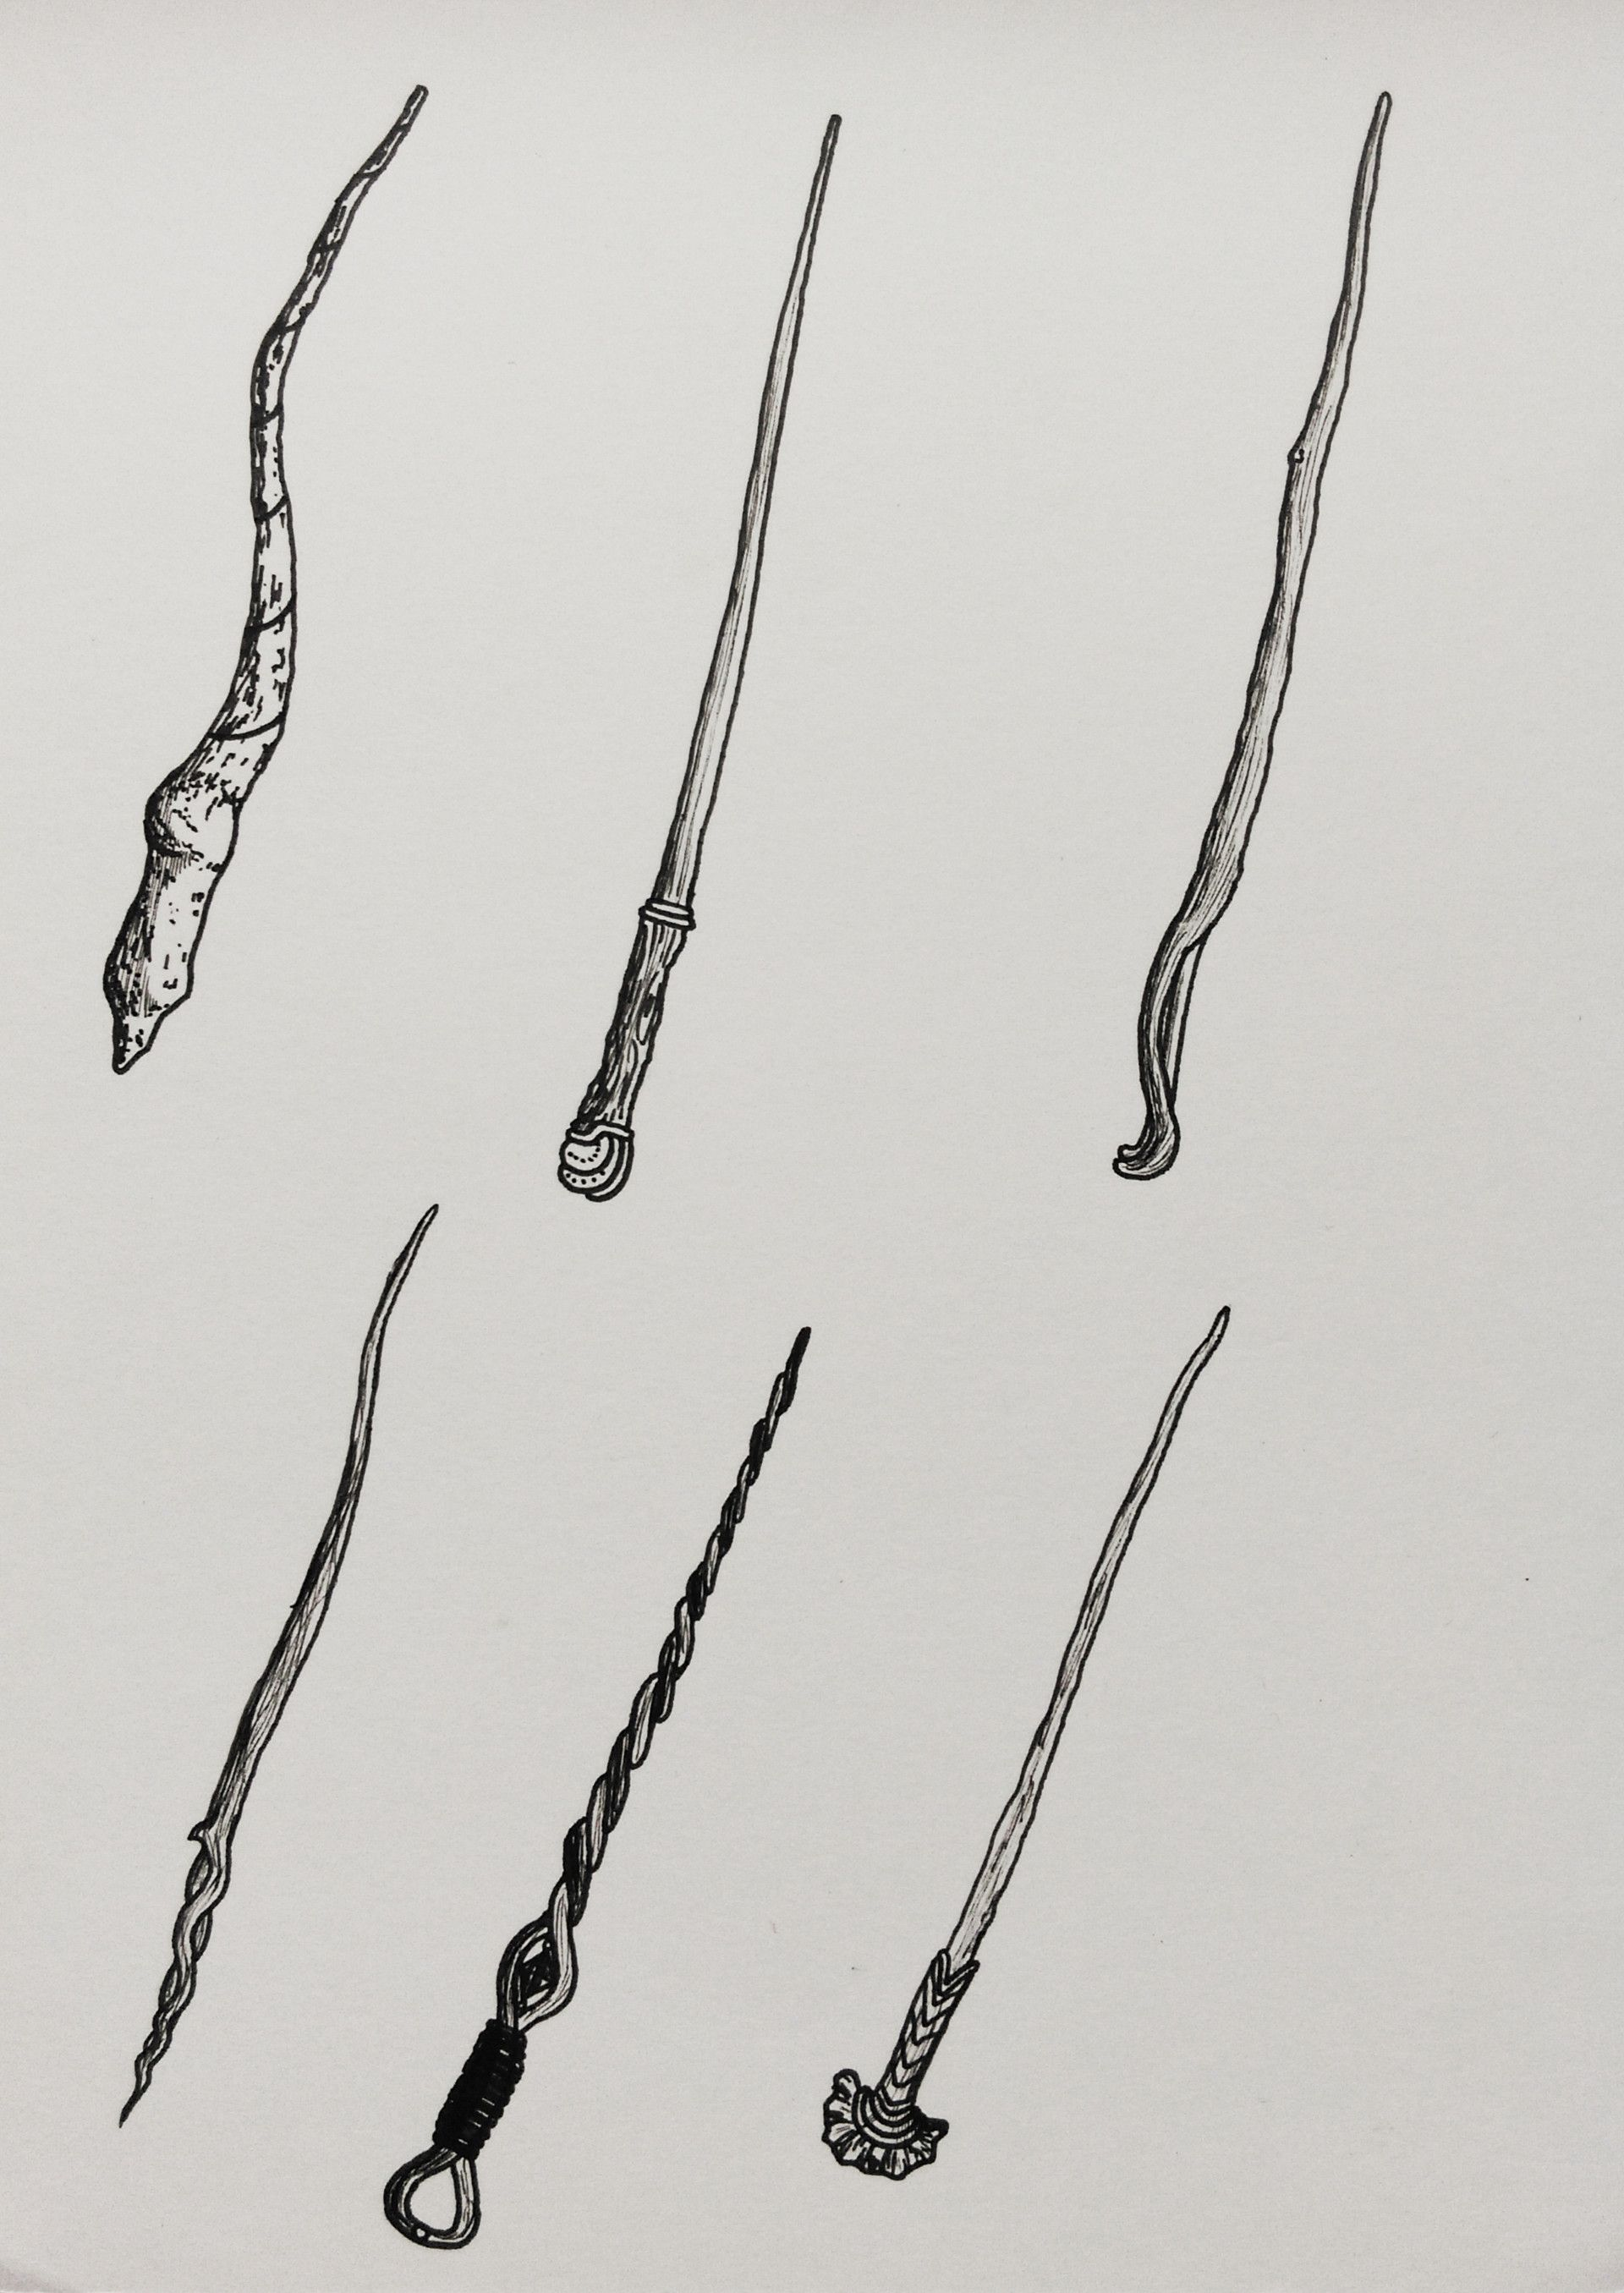 Pin By The Mockingbird On Wand Concepts